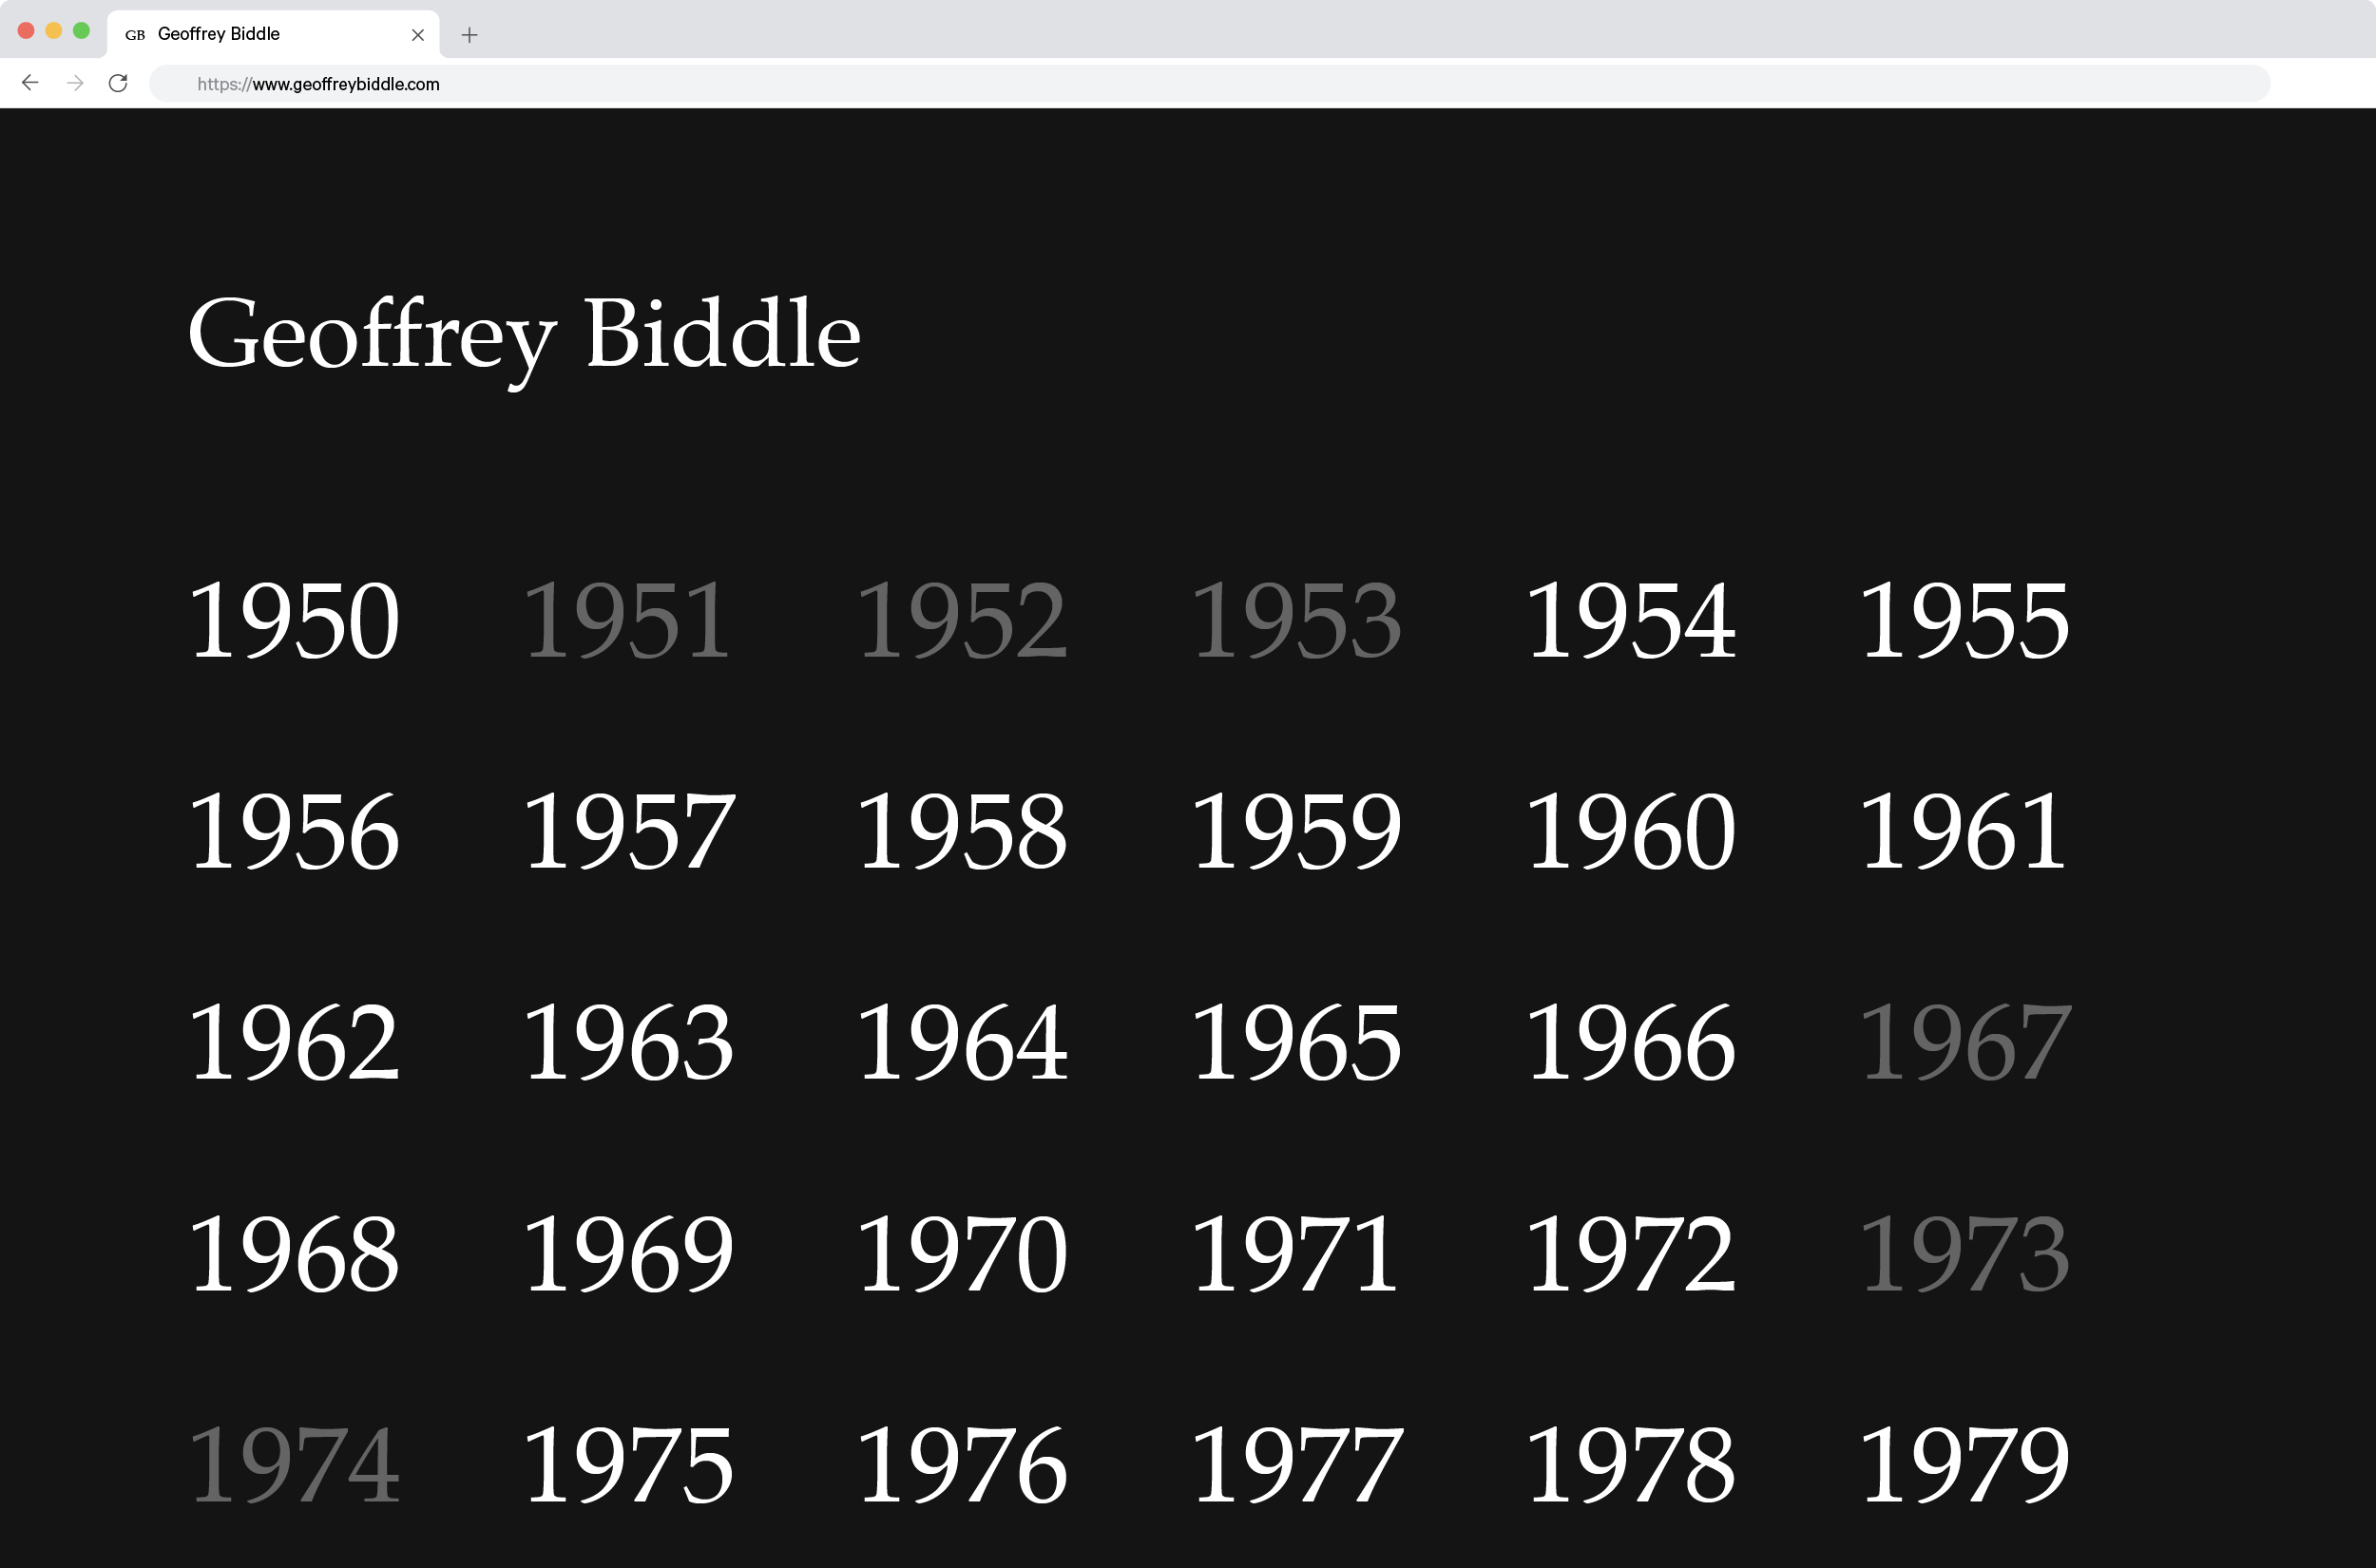 Screenshot of Geoffrey Biddle's website home page, which features his name and years from 1950 to 1979 in black, white, and grey.